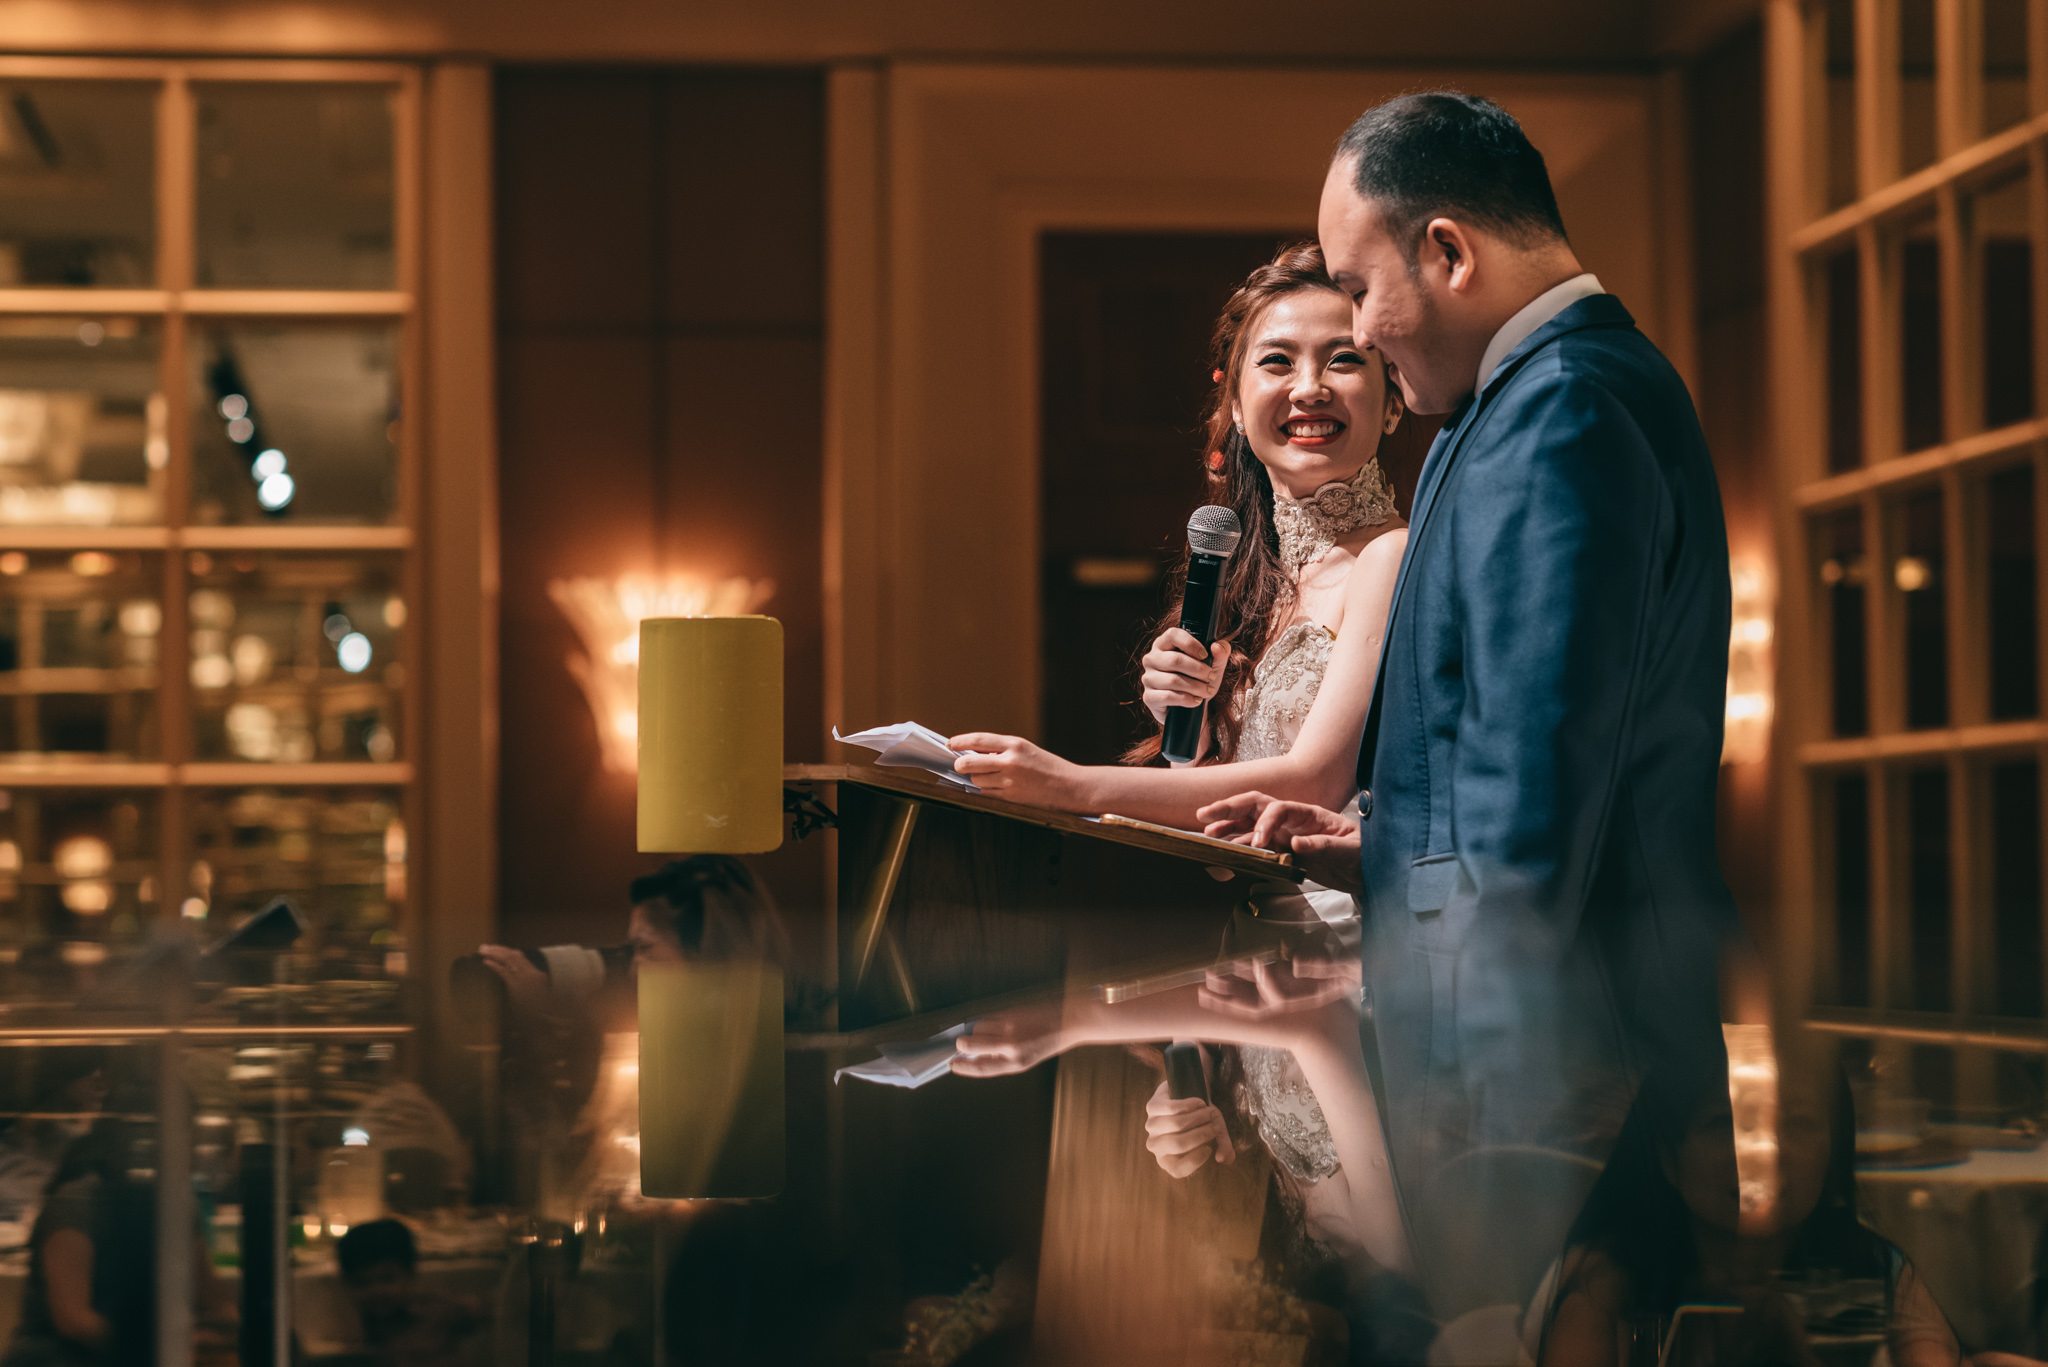 Eunice & Winshire Wedding Day Highlights (resized for sharing) - 226.jpg